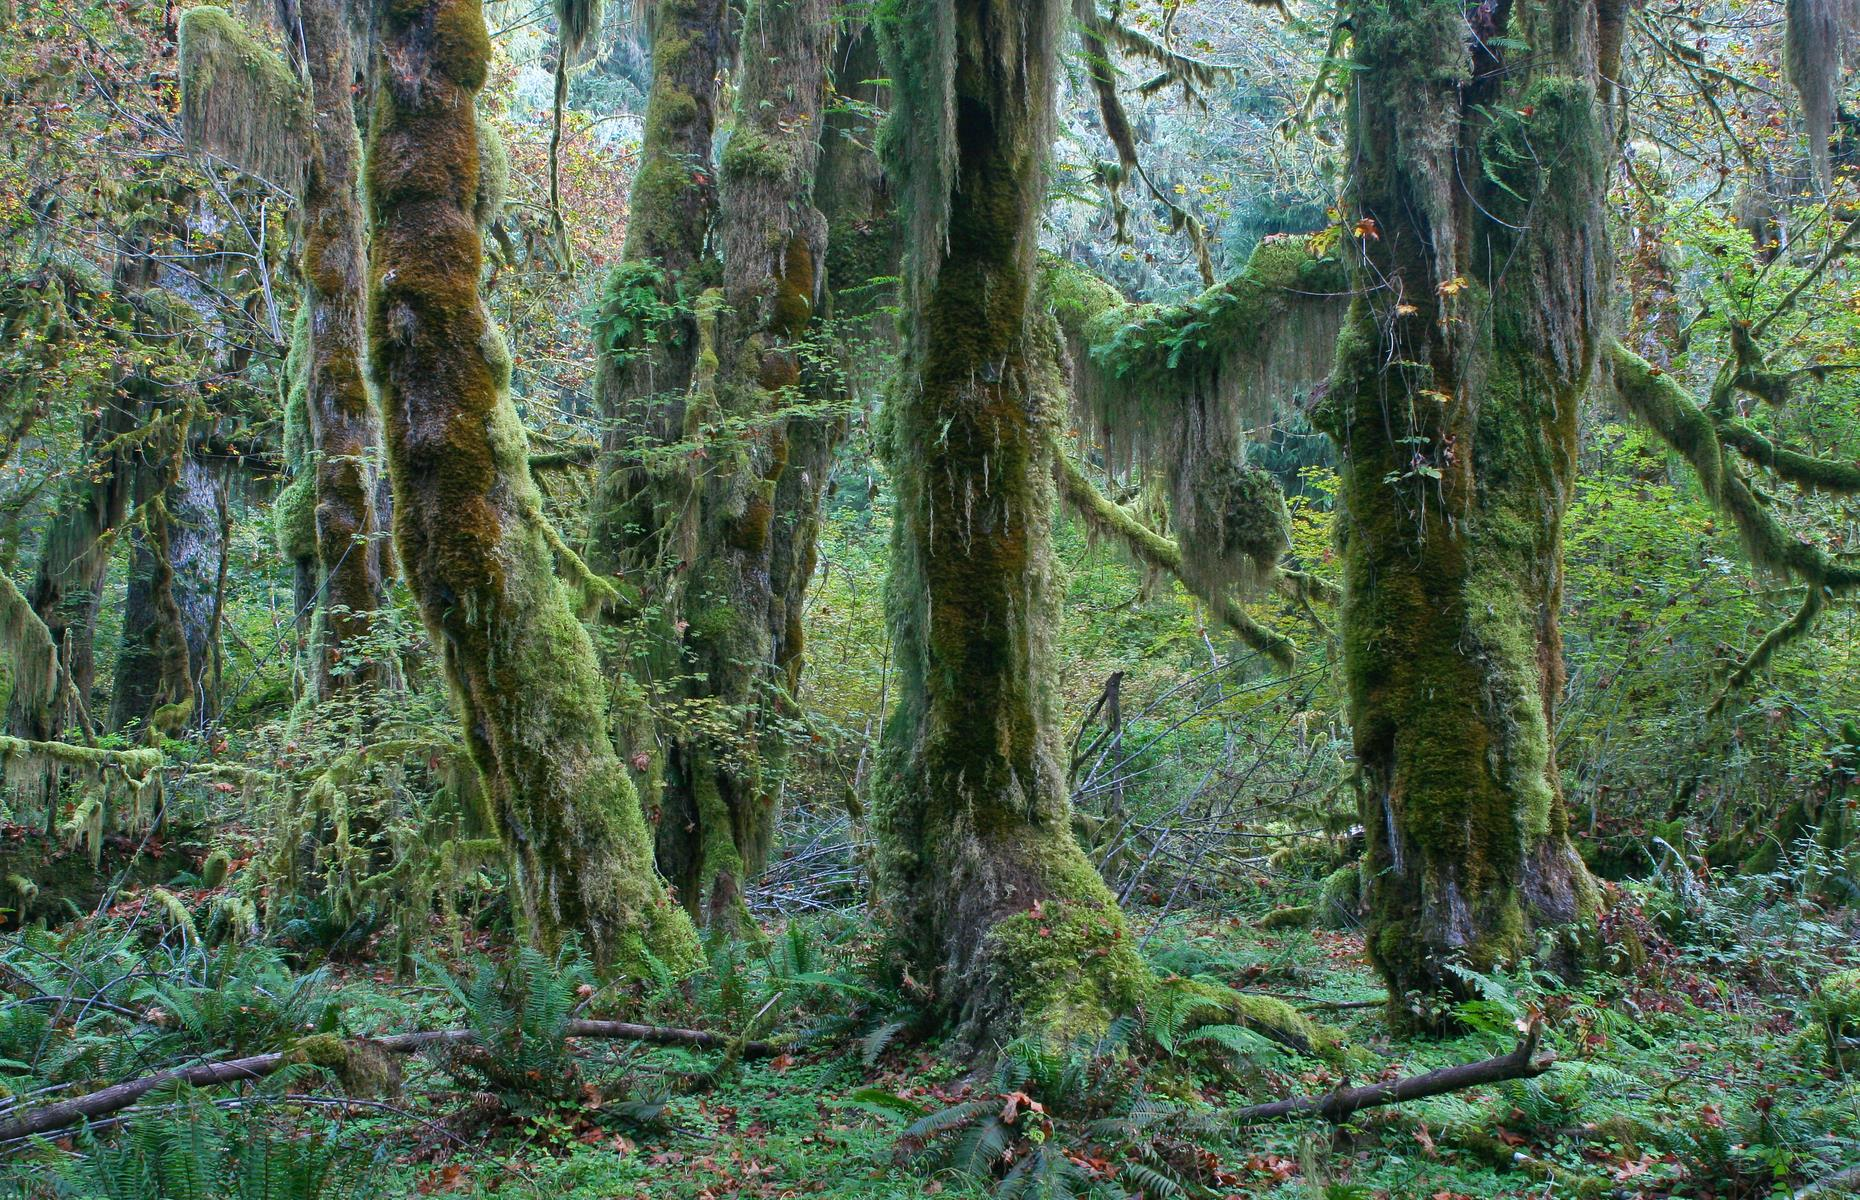 Slide 48 of 51: Olympic National Park carpets several counties with its green gorgeousness, but Jefferson County is home to one of the park's most surprising and awe-inspiring sights: the Hoh Rain Forest. This temperate rainforest is where centuries-old hemlock trees are dressed in thick, velvety moss. It's the stuff of fairy tales, as is pretty much every inch of this county, from waterfalls to shorelines laced with marshes and sandy coves. Check out more of the most magical places on Earth.